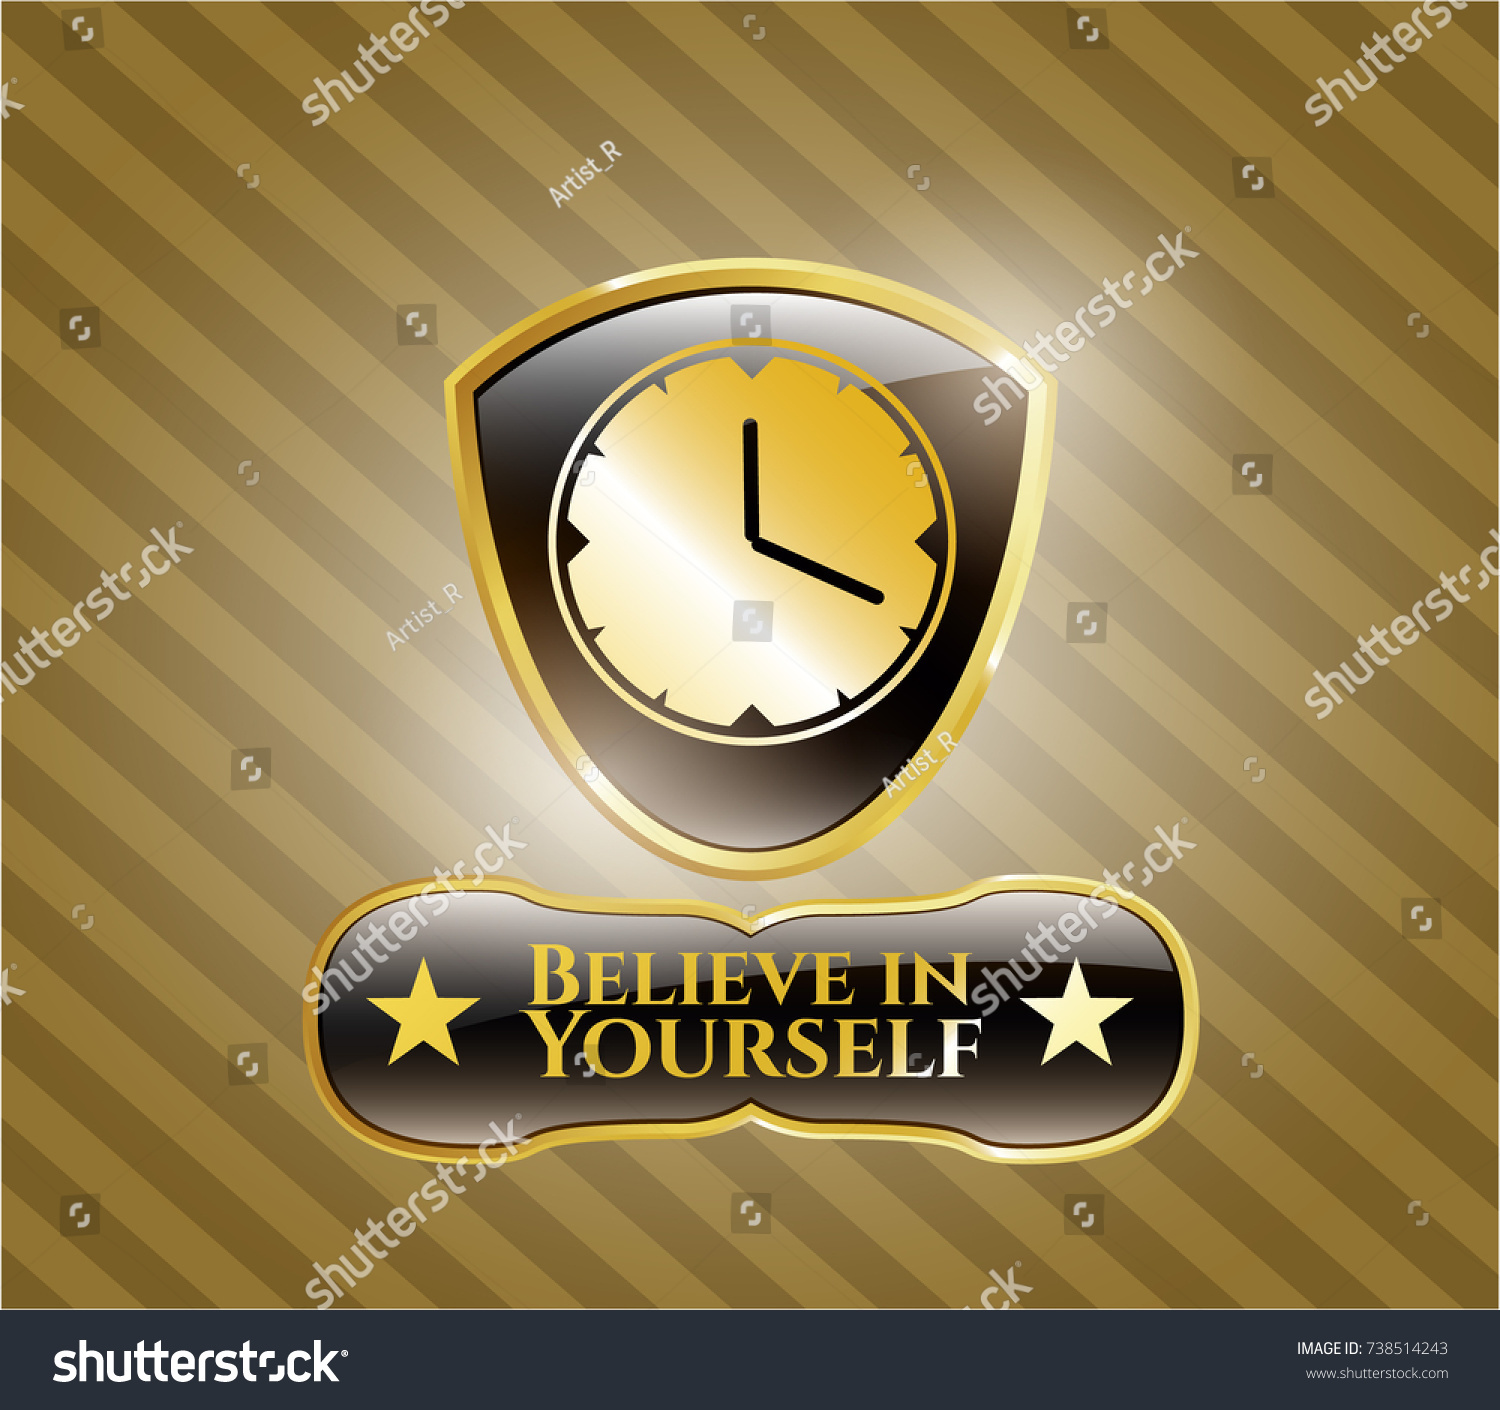 Gold shiny badge clock time icon stock vector 738514243 shutterstock gold shiny badge with clock time icon and believe in yourself text inside biocorpaavc Choice Image